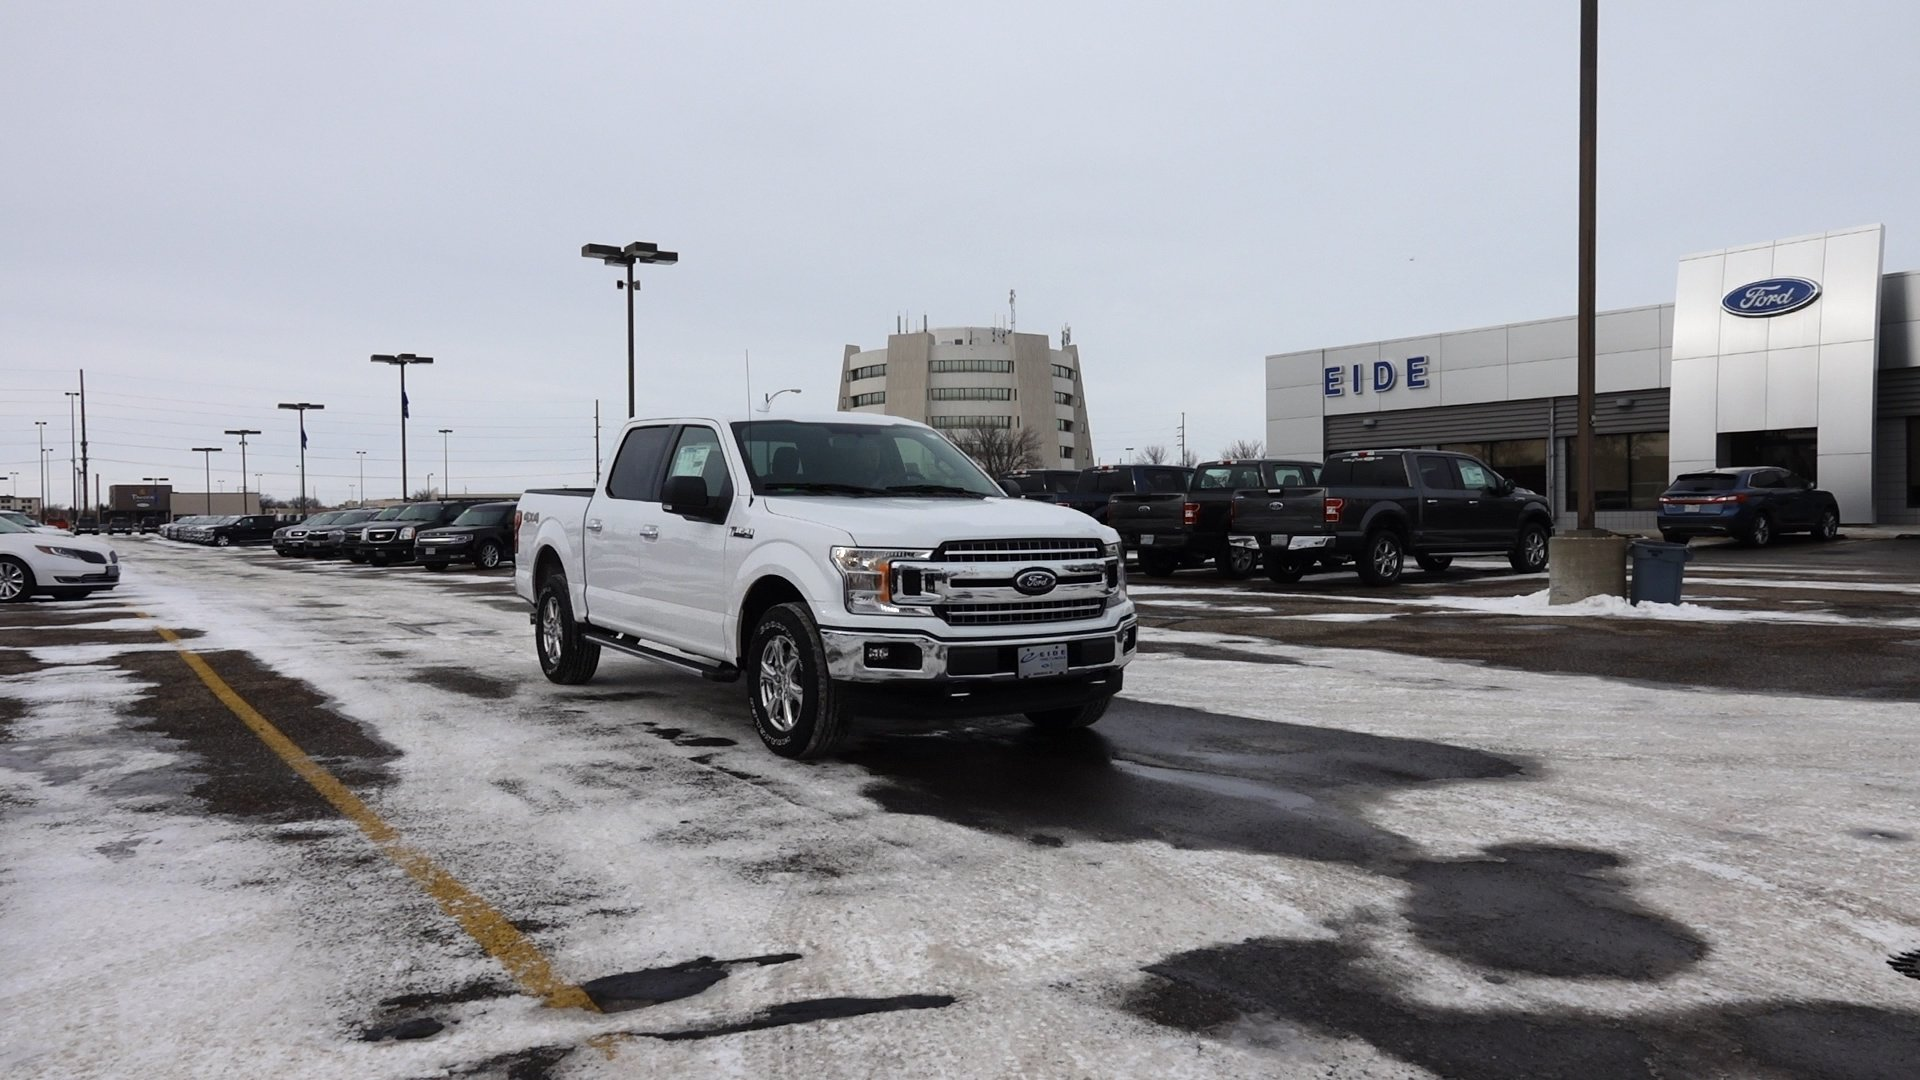 Handle icy roads with care so you can travel safely this winter in Bismarck!